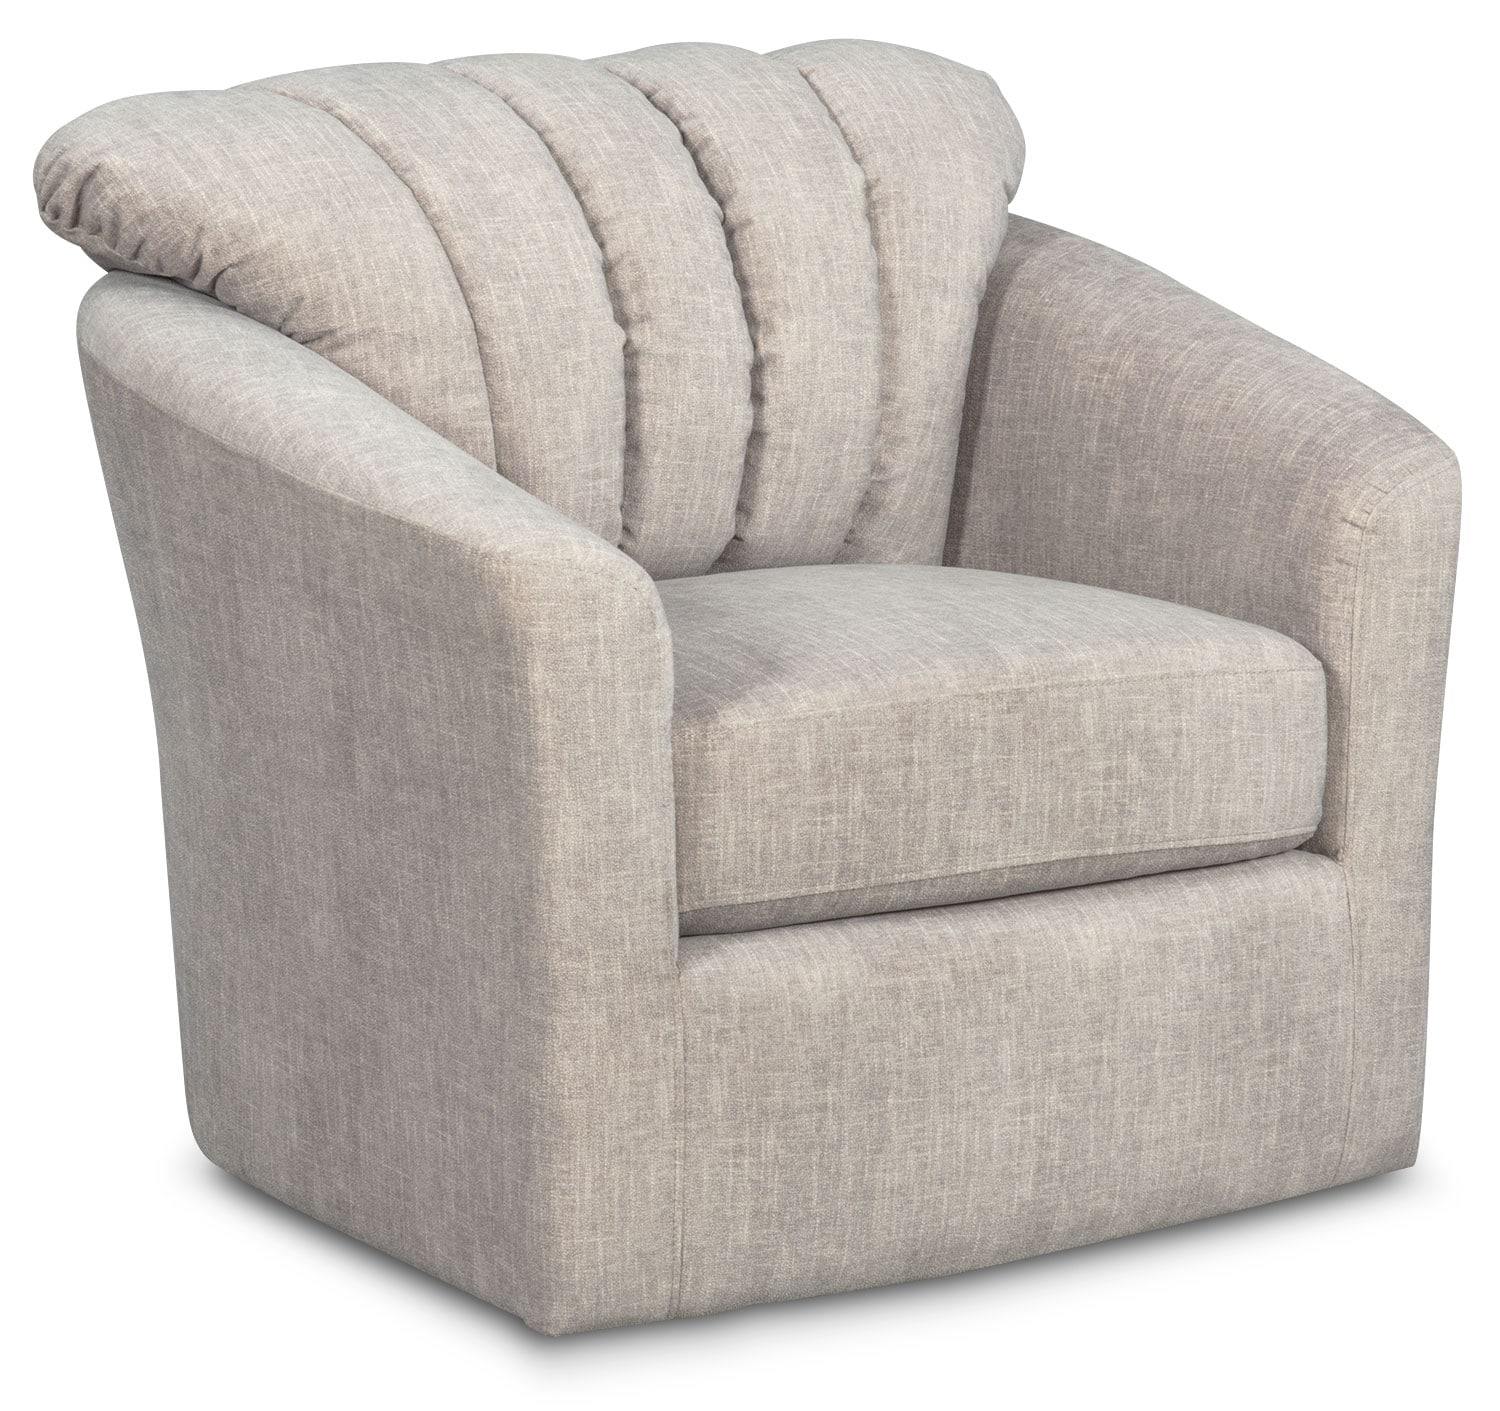 Living Room Furniture - Parker Swivel Chair - Gray